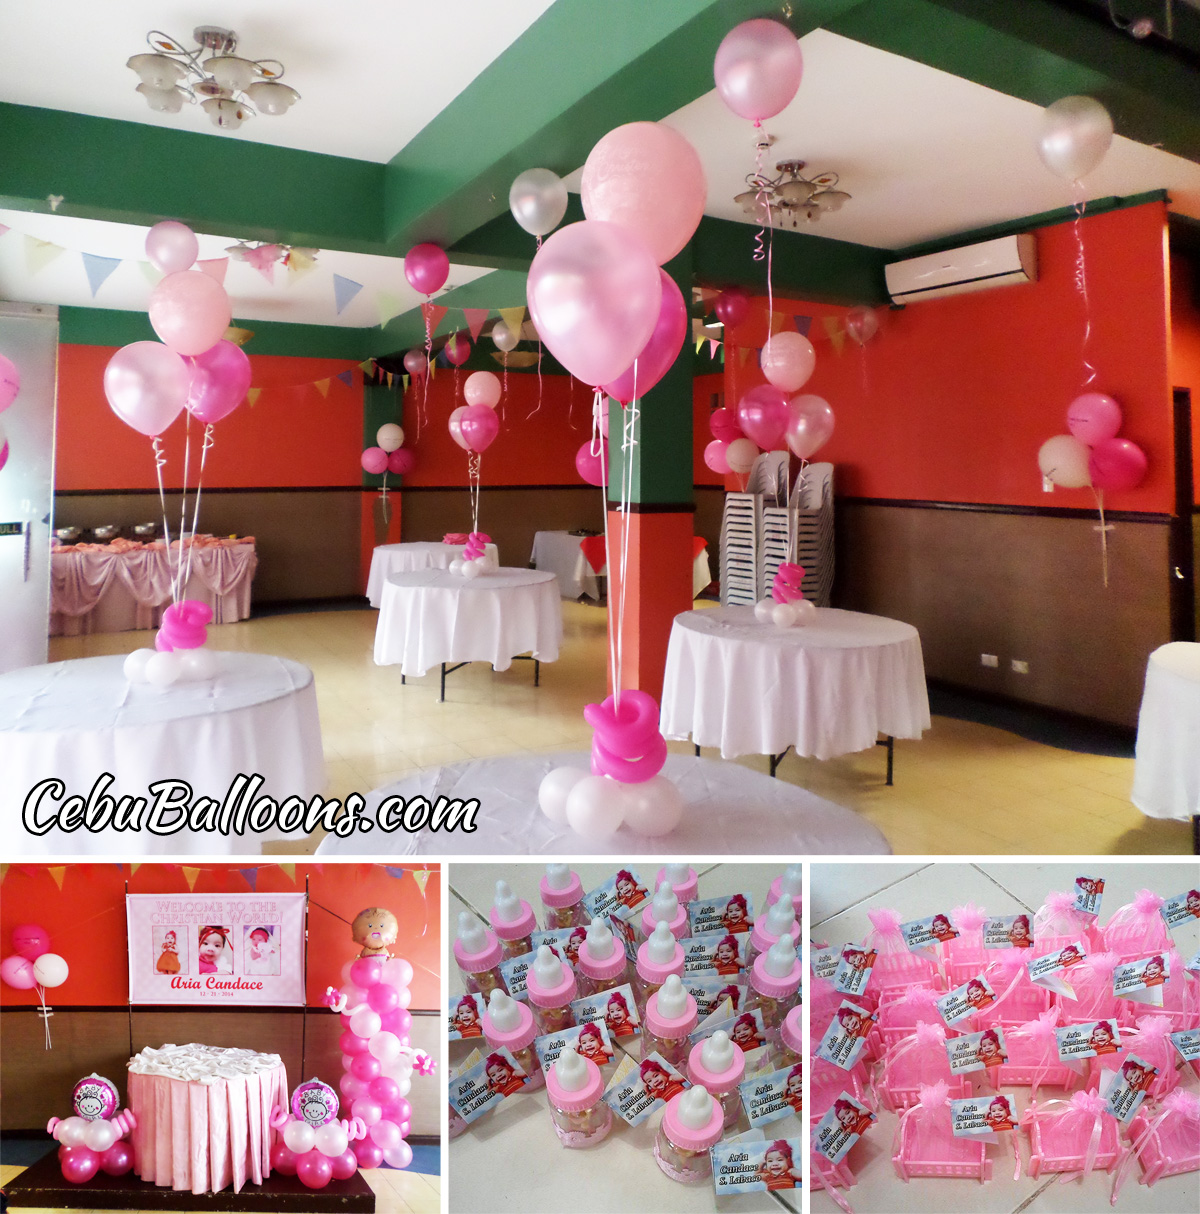 Christening decors giveaways for aria candace lobaco at hannahs christening decors giveaways for aria candace lobaco at hannahs party place junglespirit Gallery